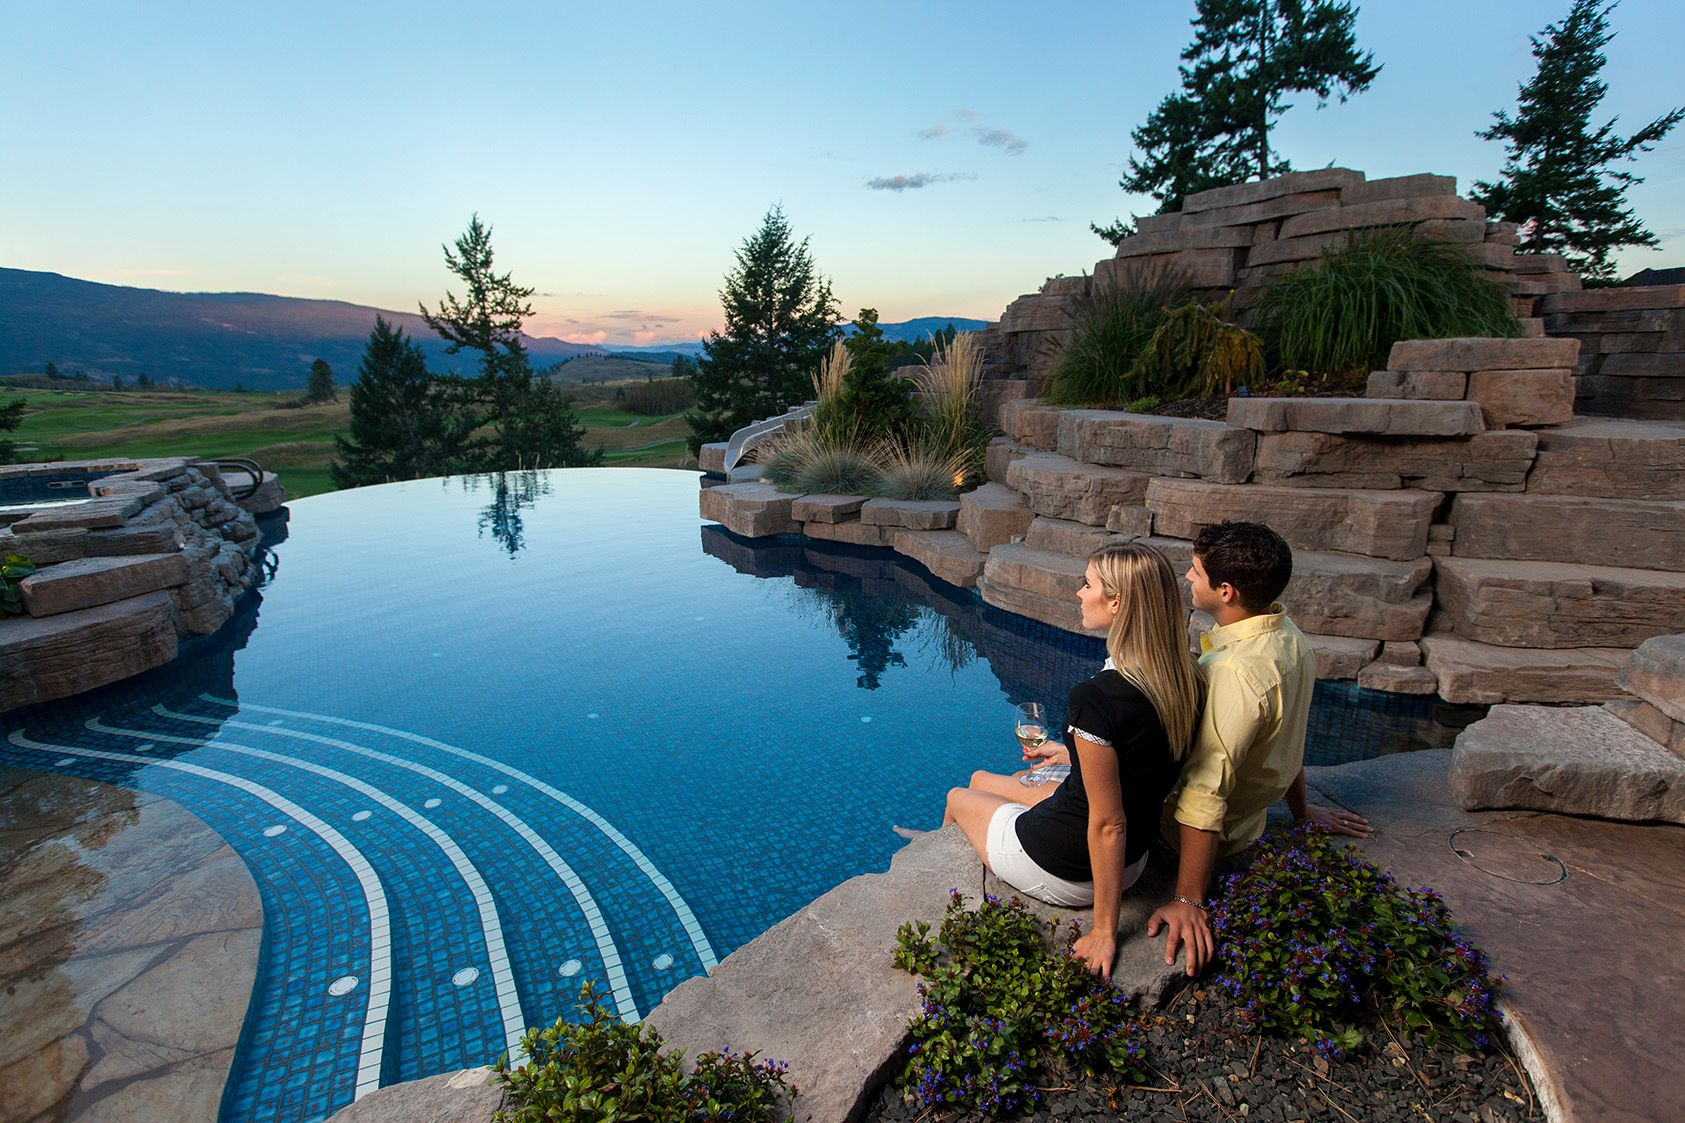 Rosetta Hardscapes for the backyard poolside of your dreams